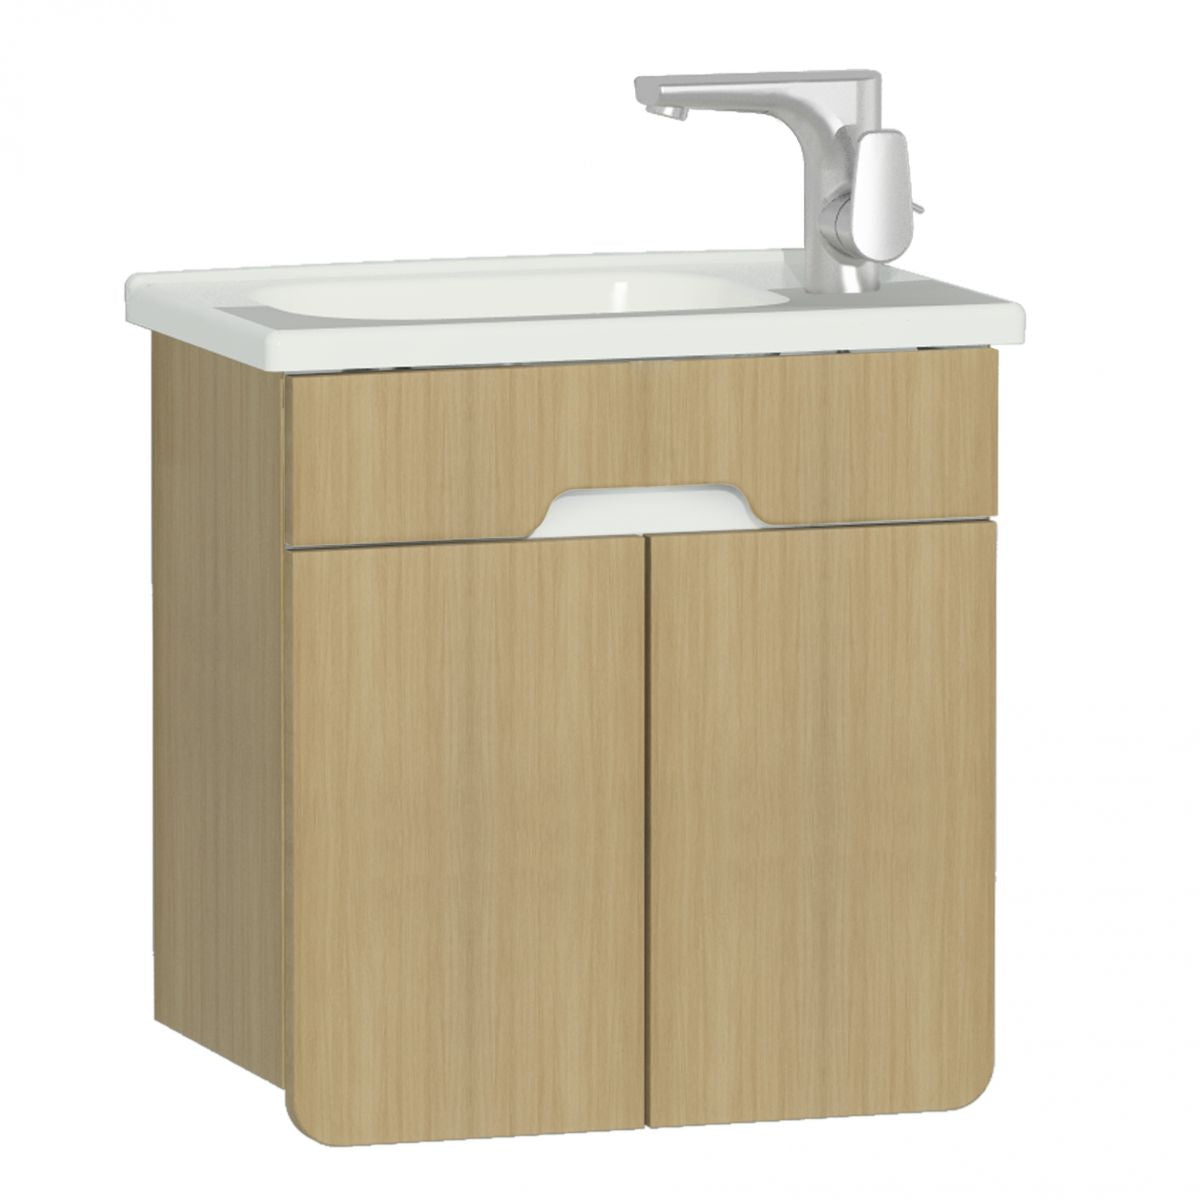 D-Light 500mm Double Door Wall Hung Unit & Basin - blueskybathrooms